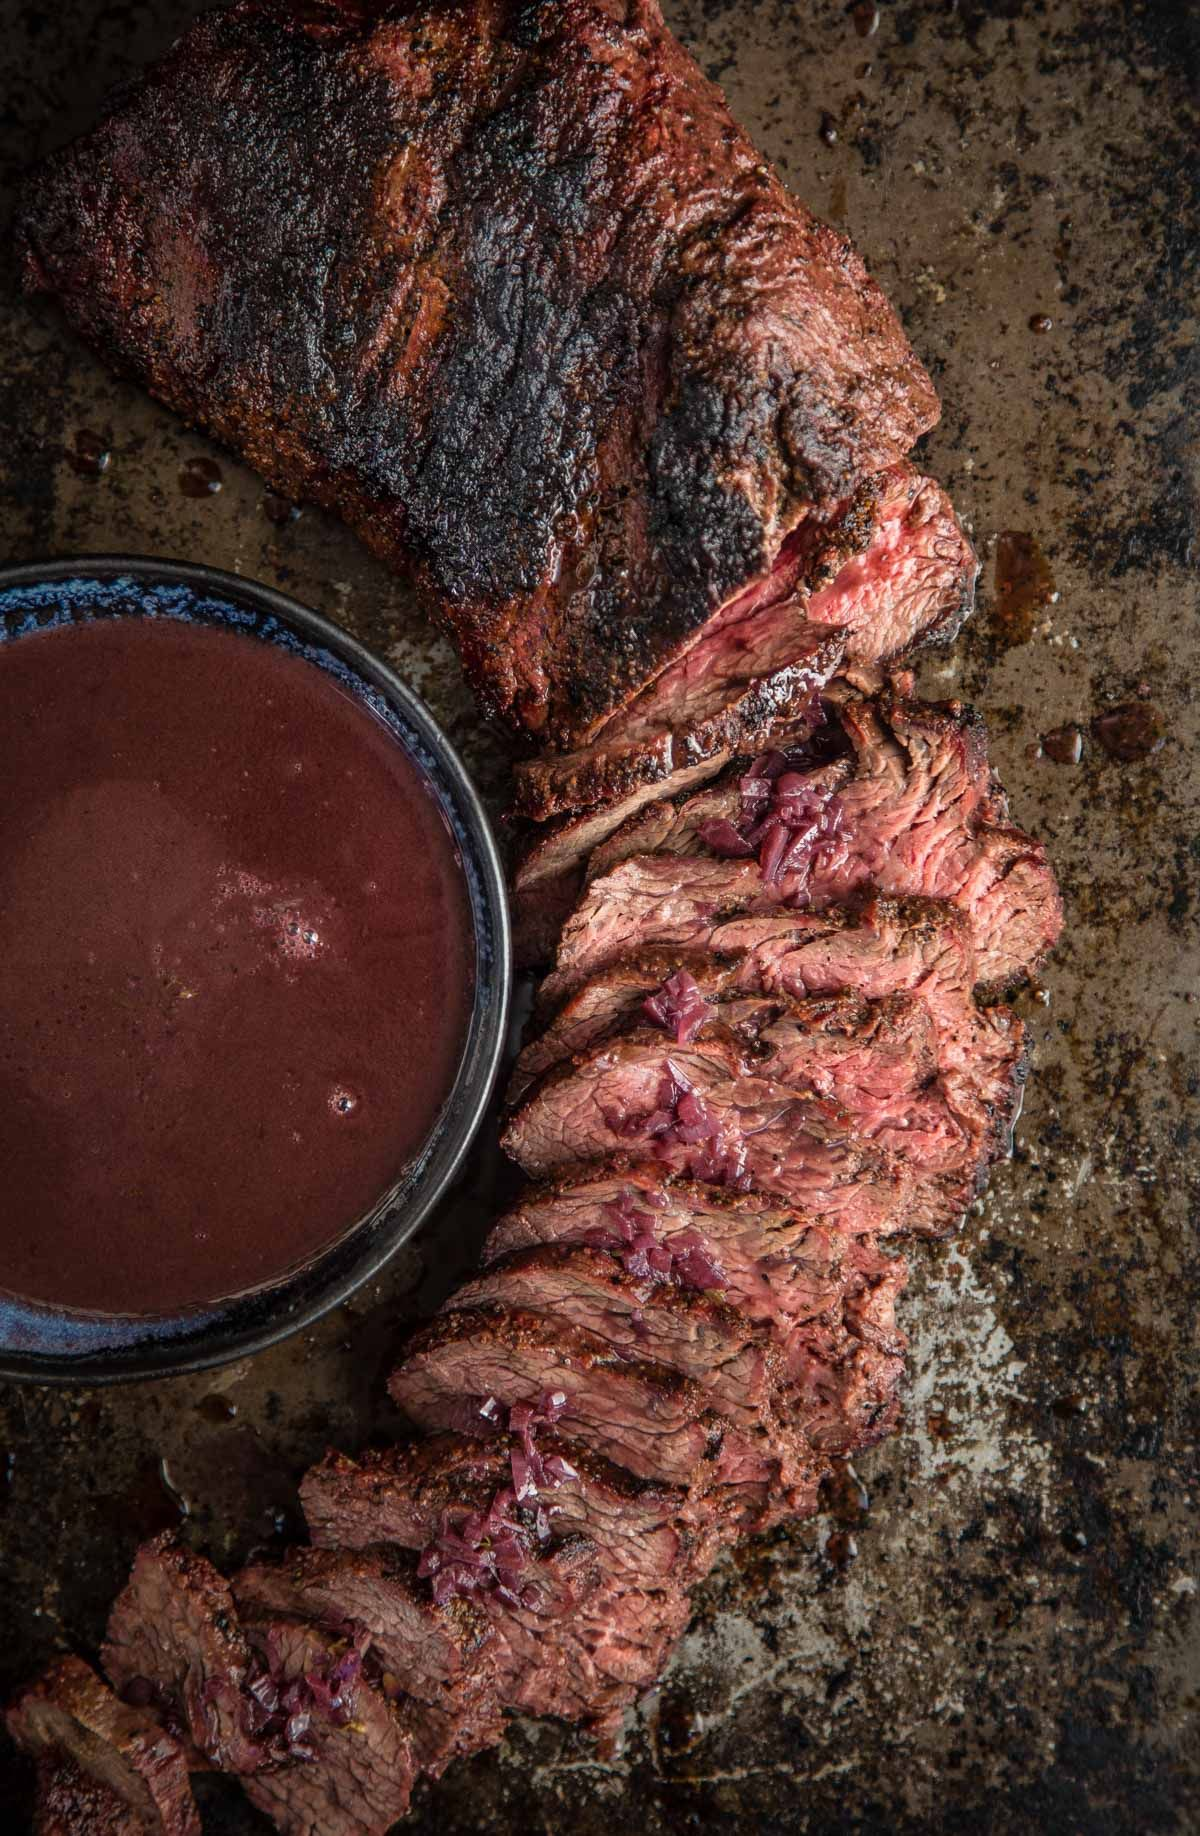 Grilled Tri Tip With Zinfandel Red Wine Reduction Sauce Vindulge Recipe In 2020 Red Wine Reduction Sauce Red Wine Reduction Rib Recipes